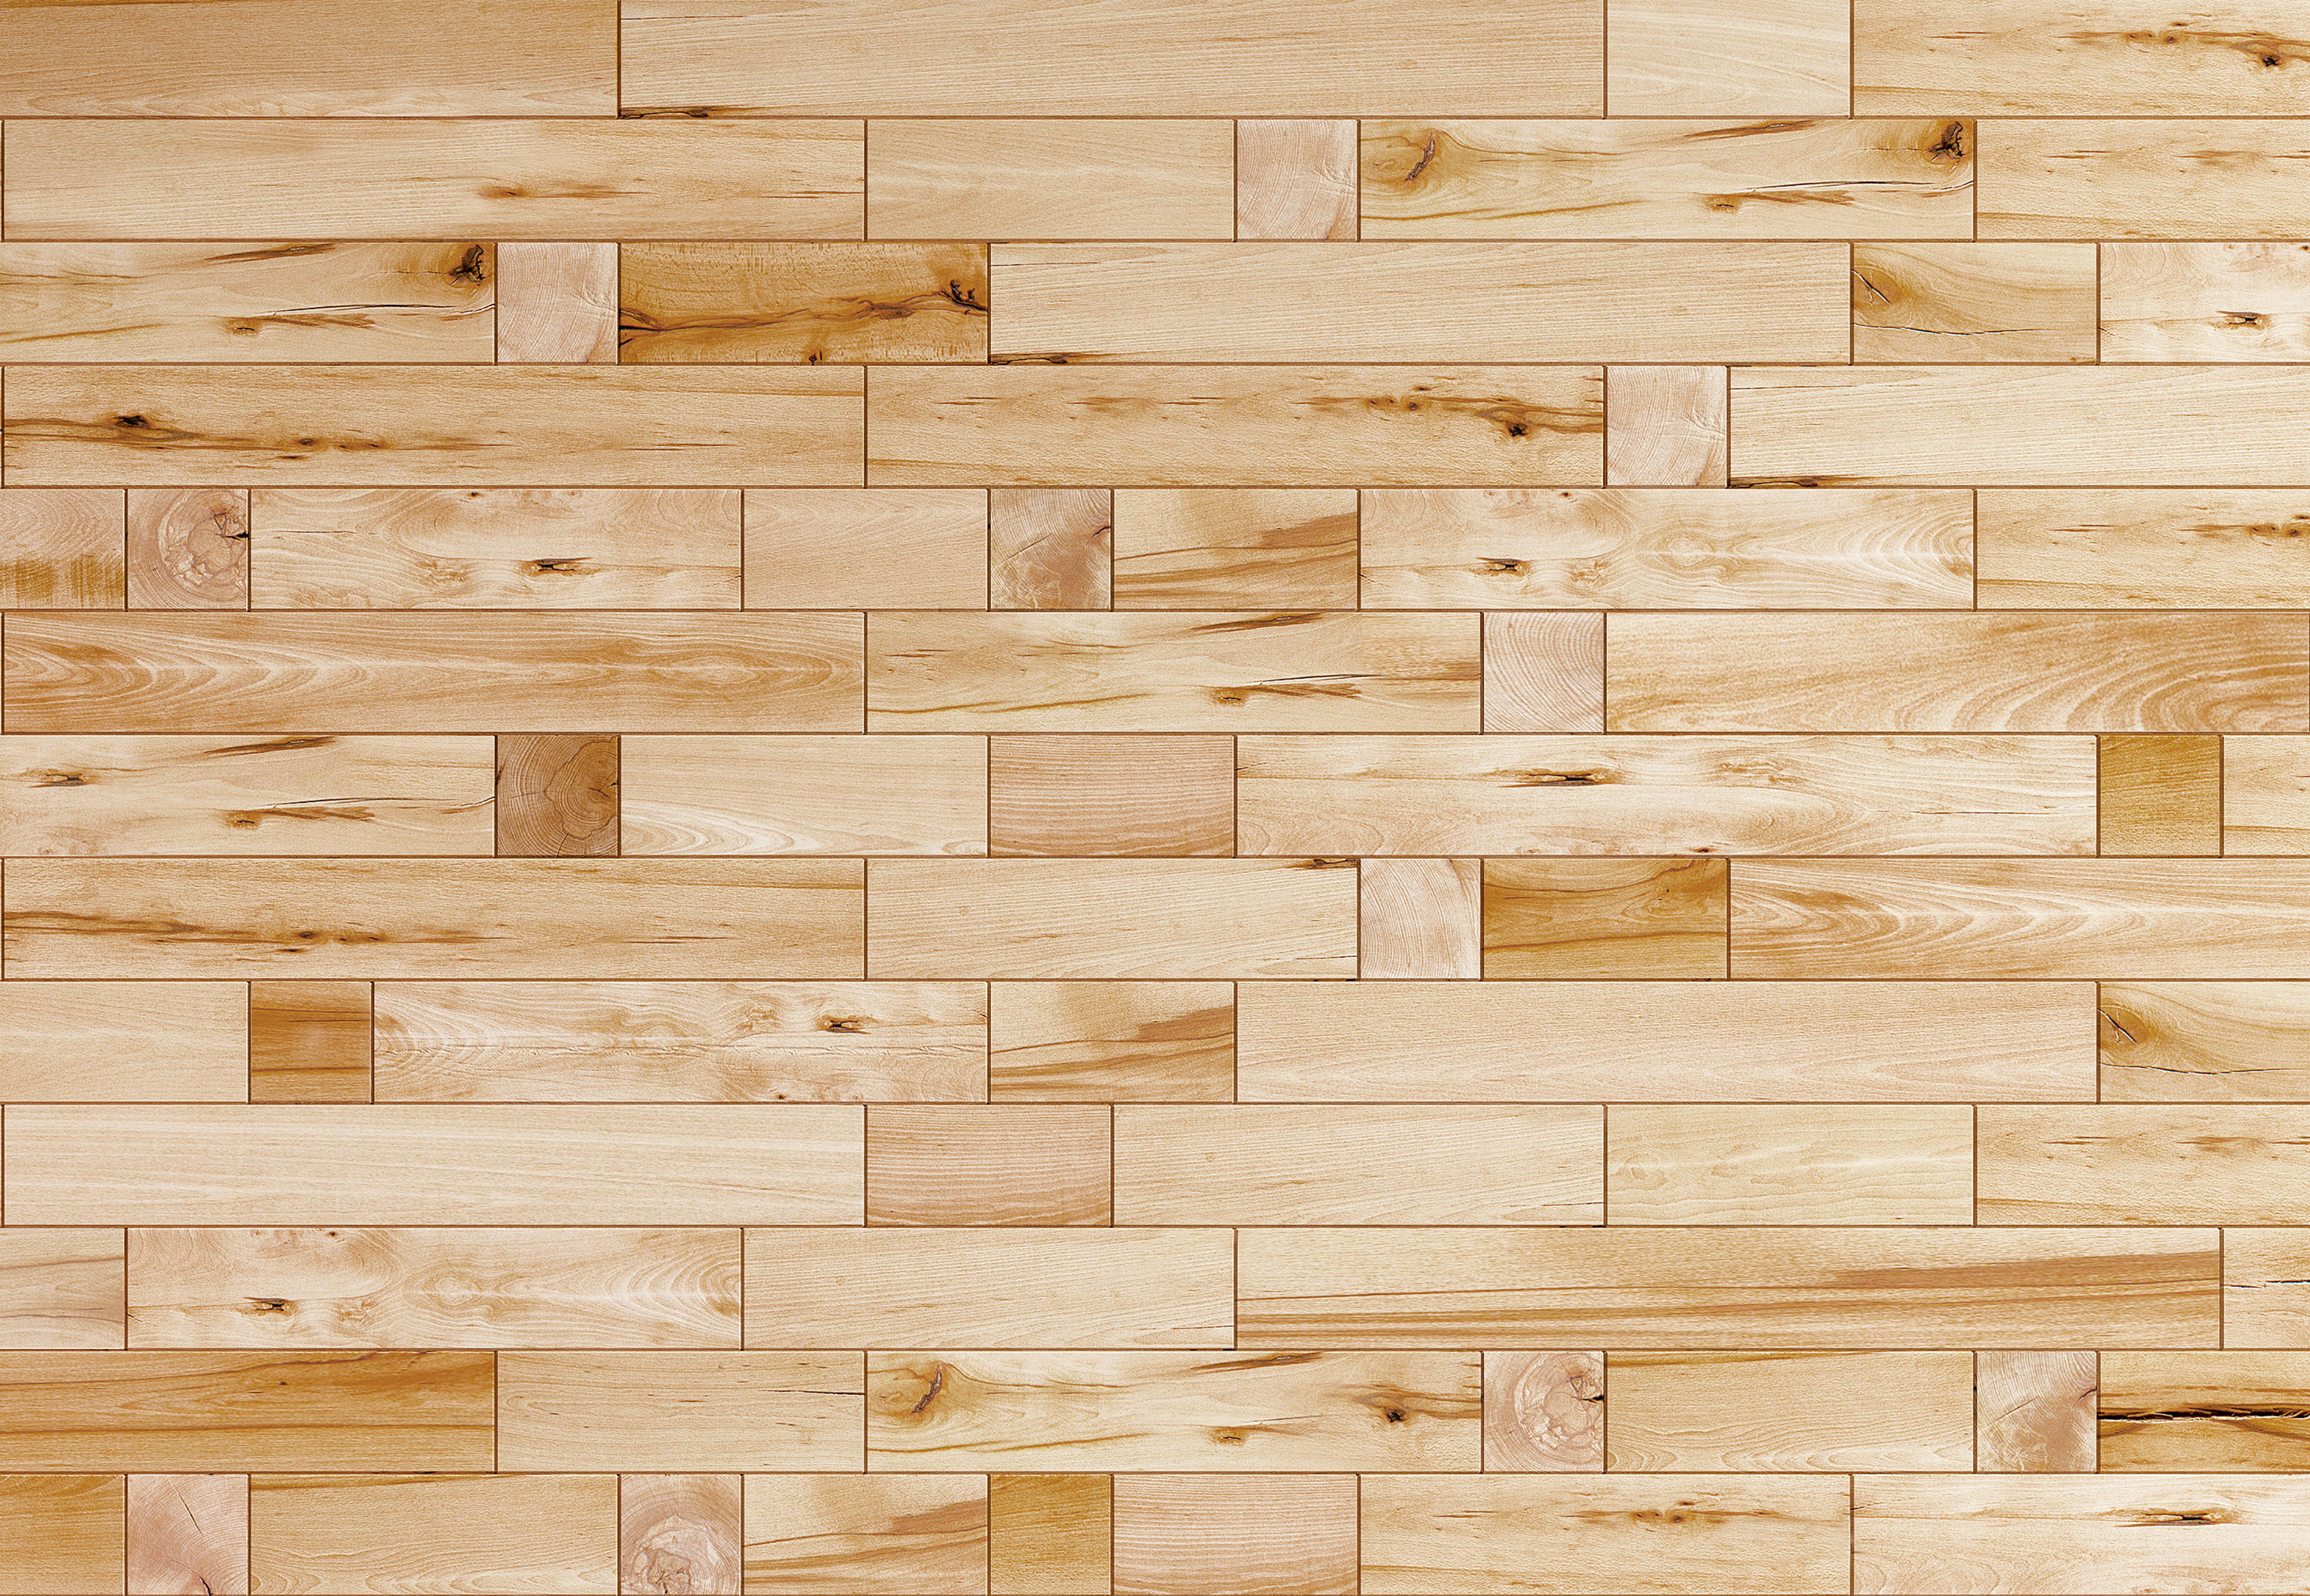 CRAFTWAND®   The Modular Wood Wall System By Craftwand | Wood Panels